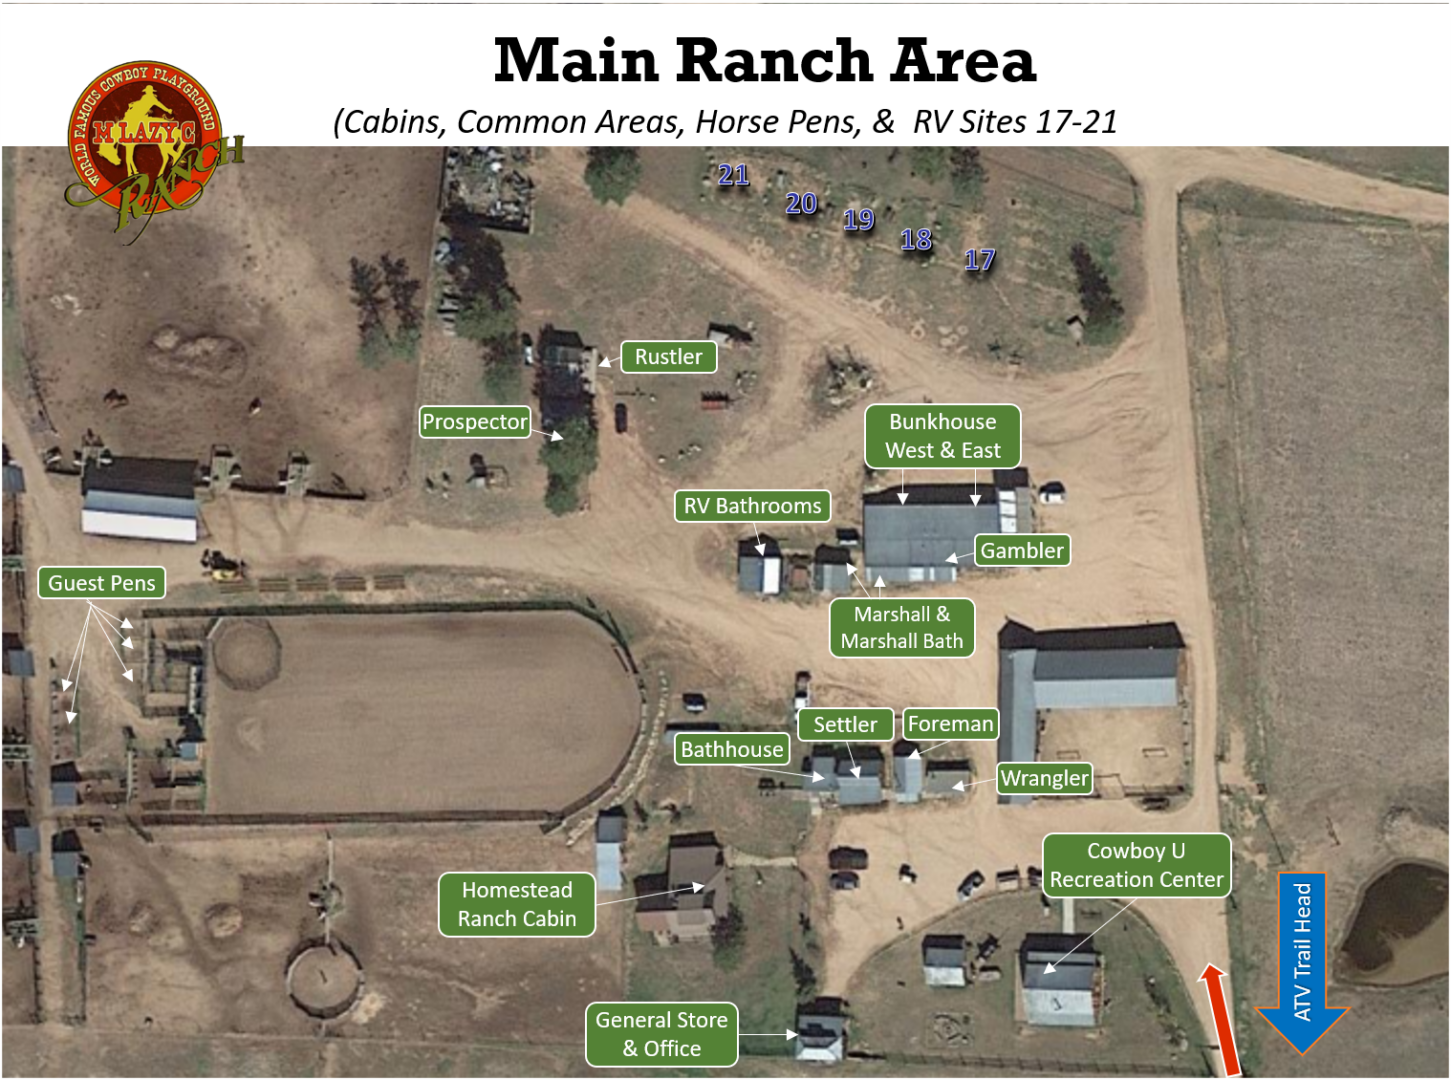 Main Ranch Area Cabins .RV.Horse